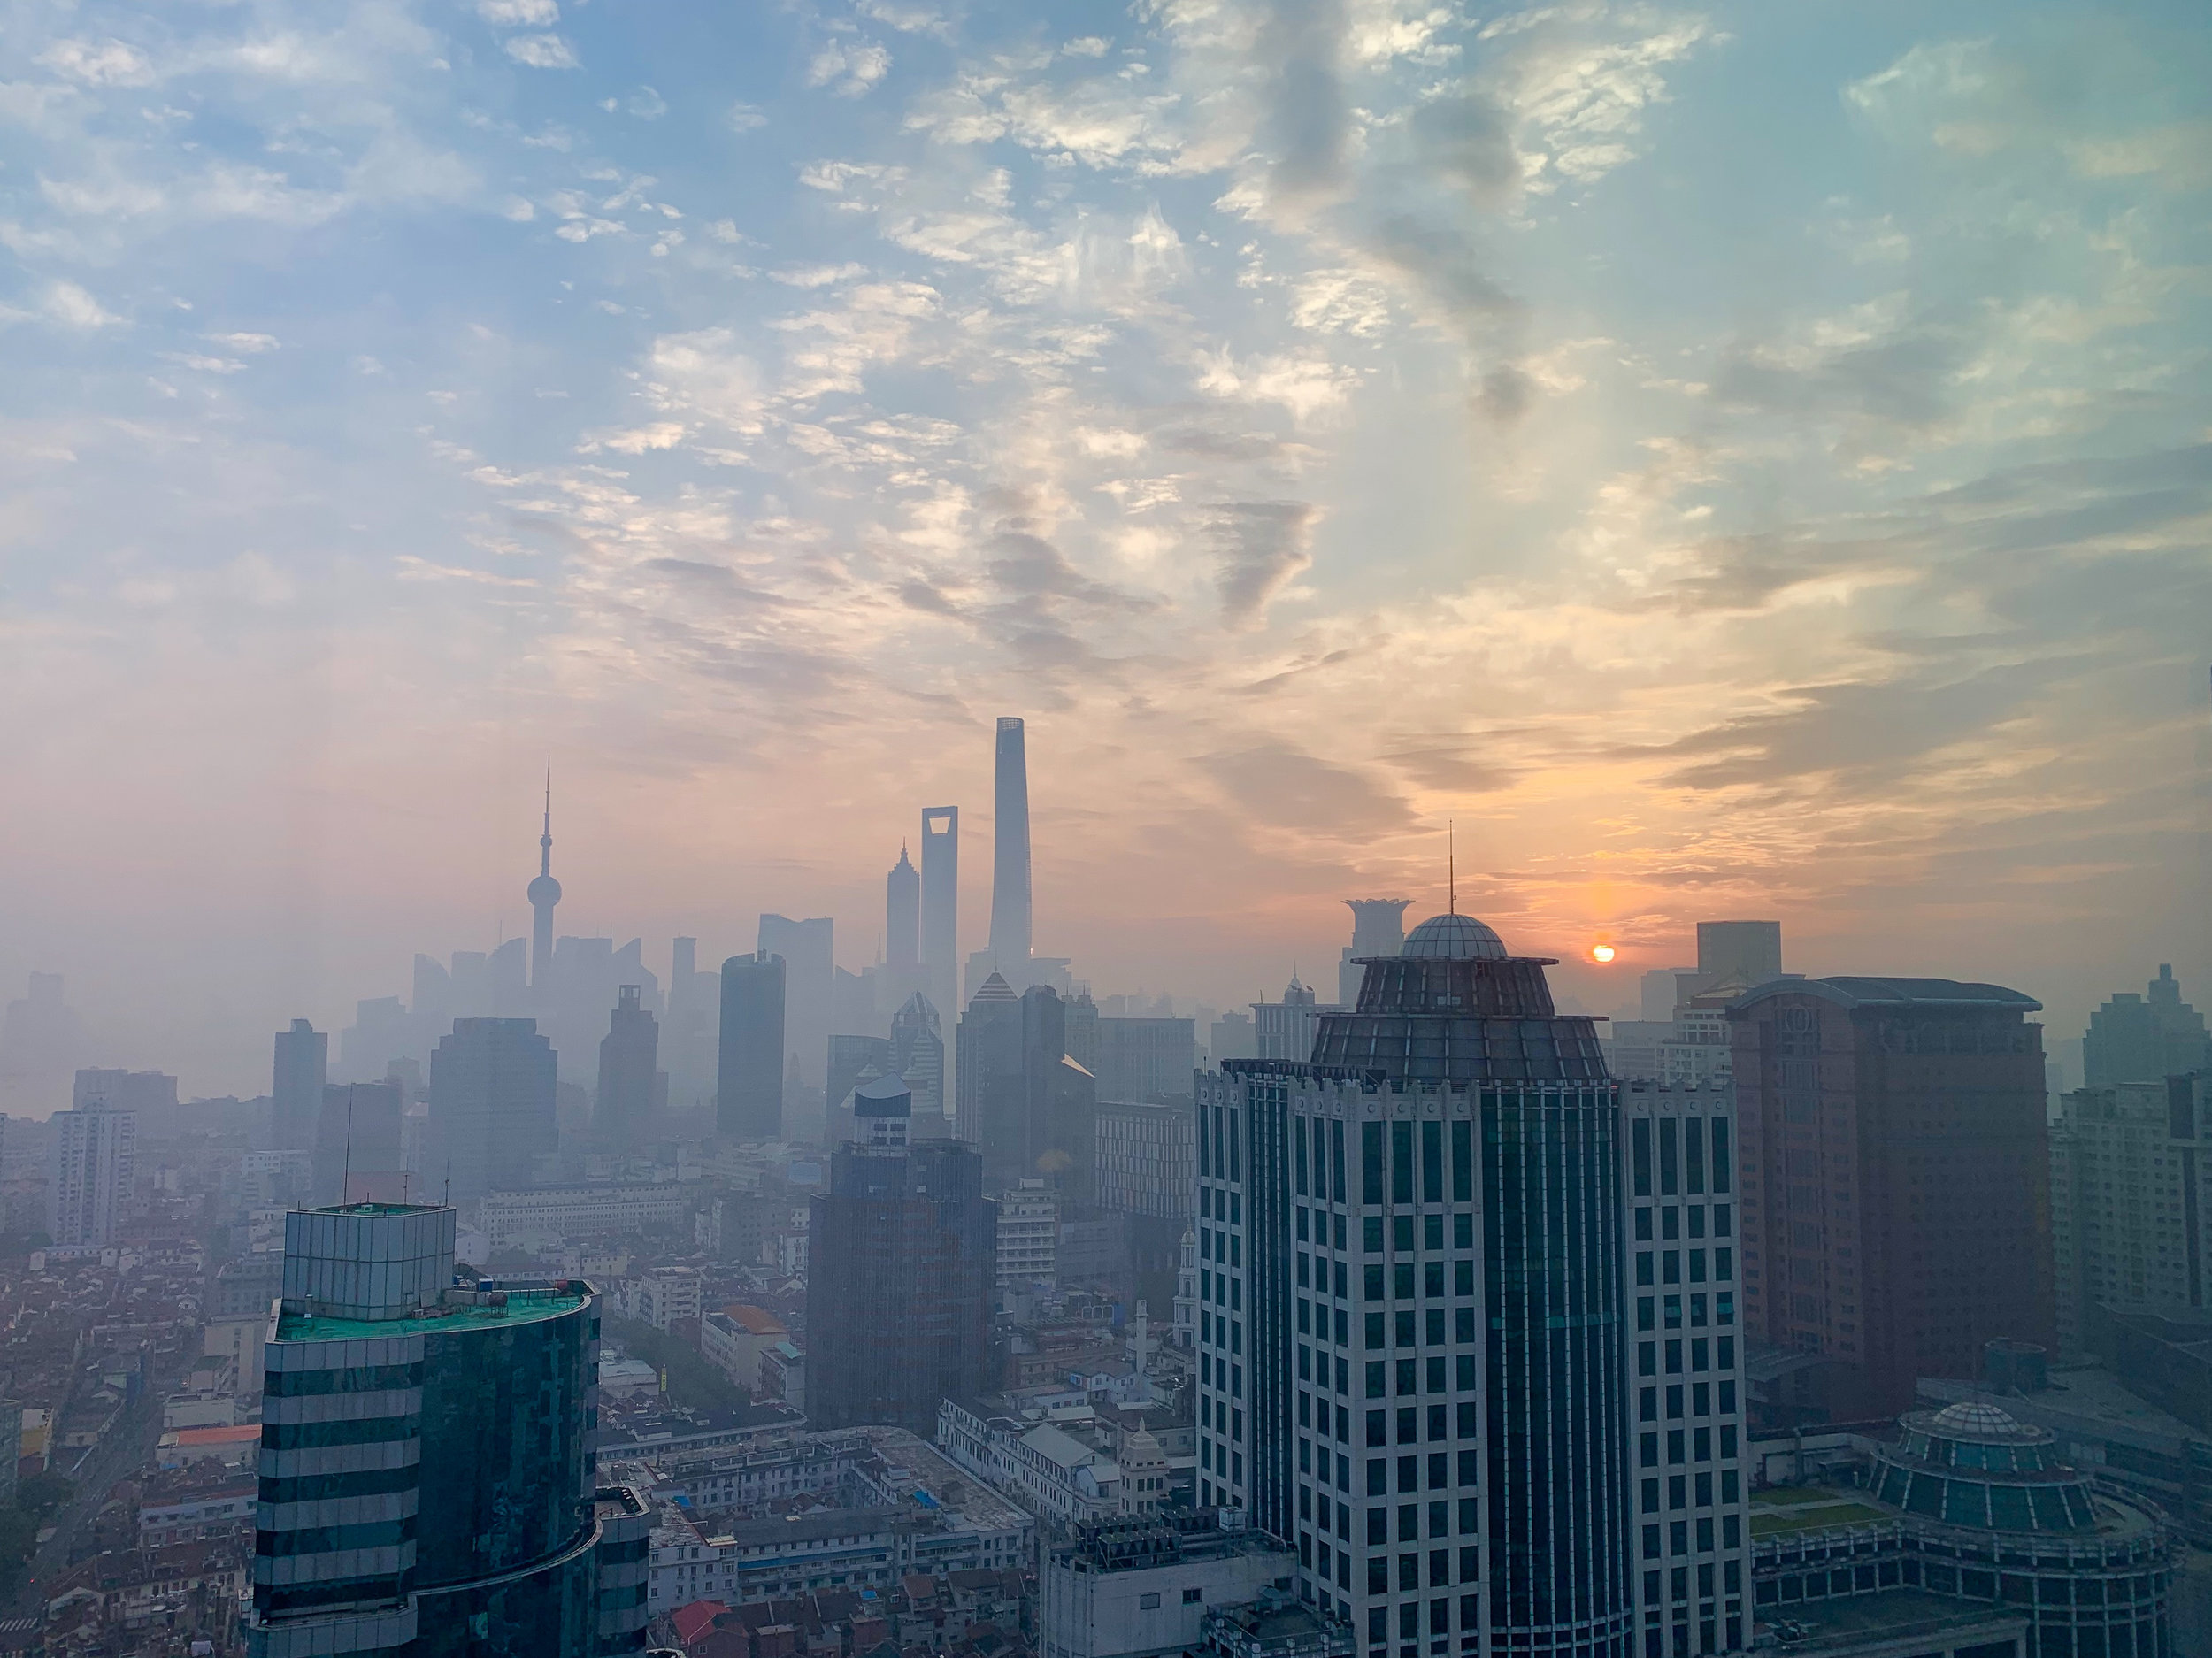 Morning sunrise highlighting partial smoggy conditions in Shanghai